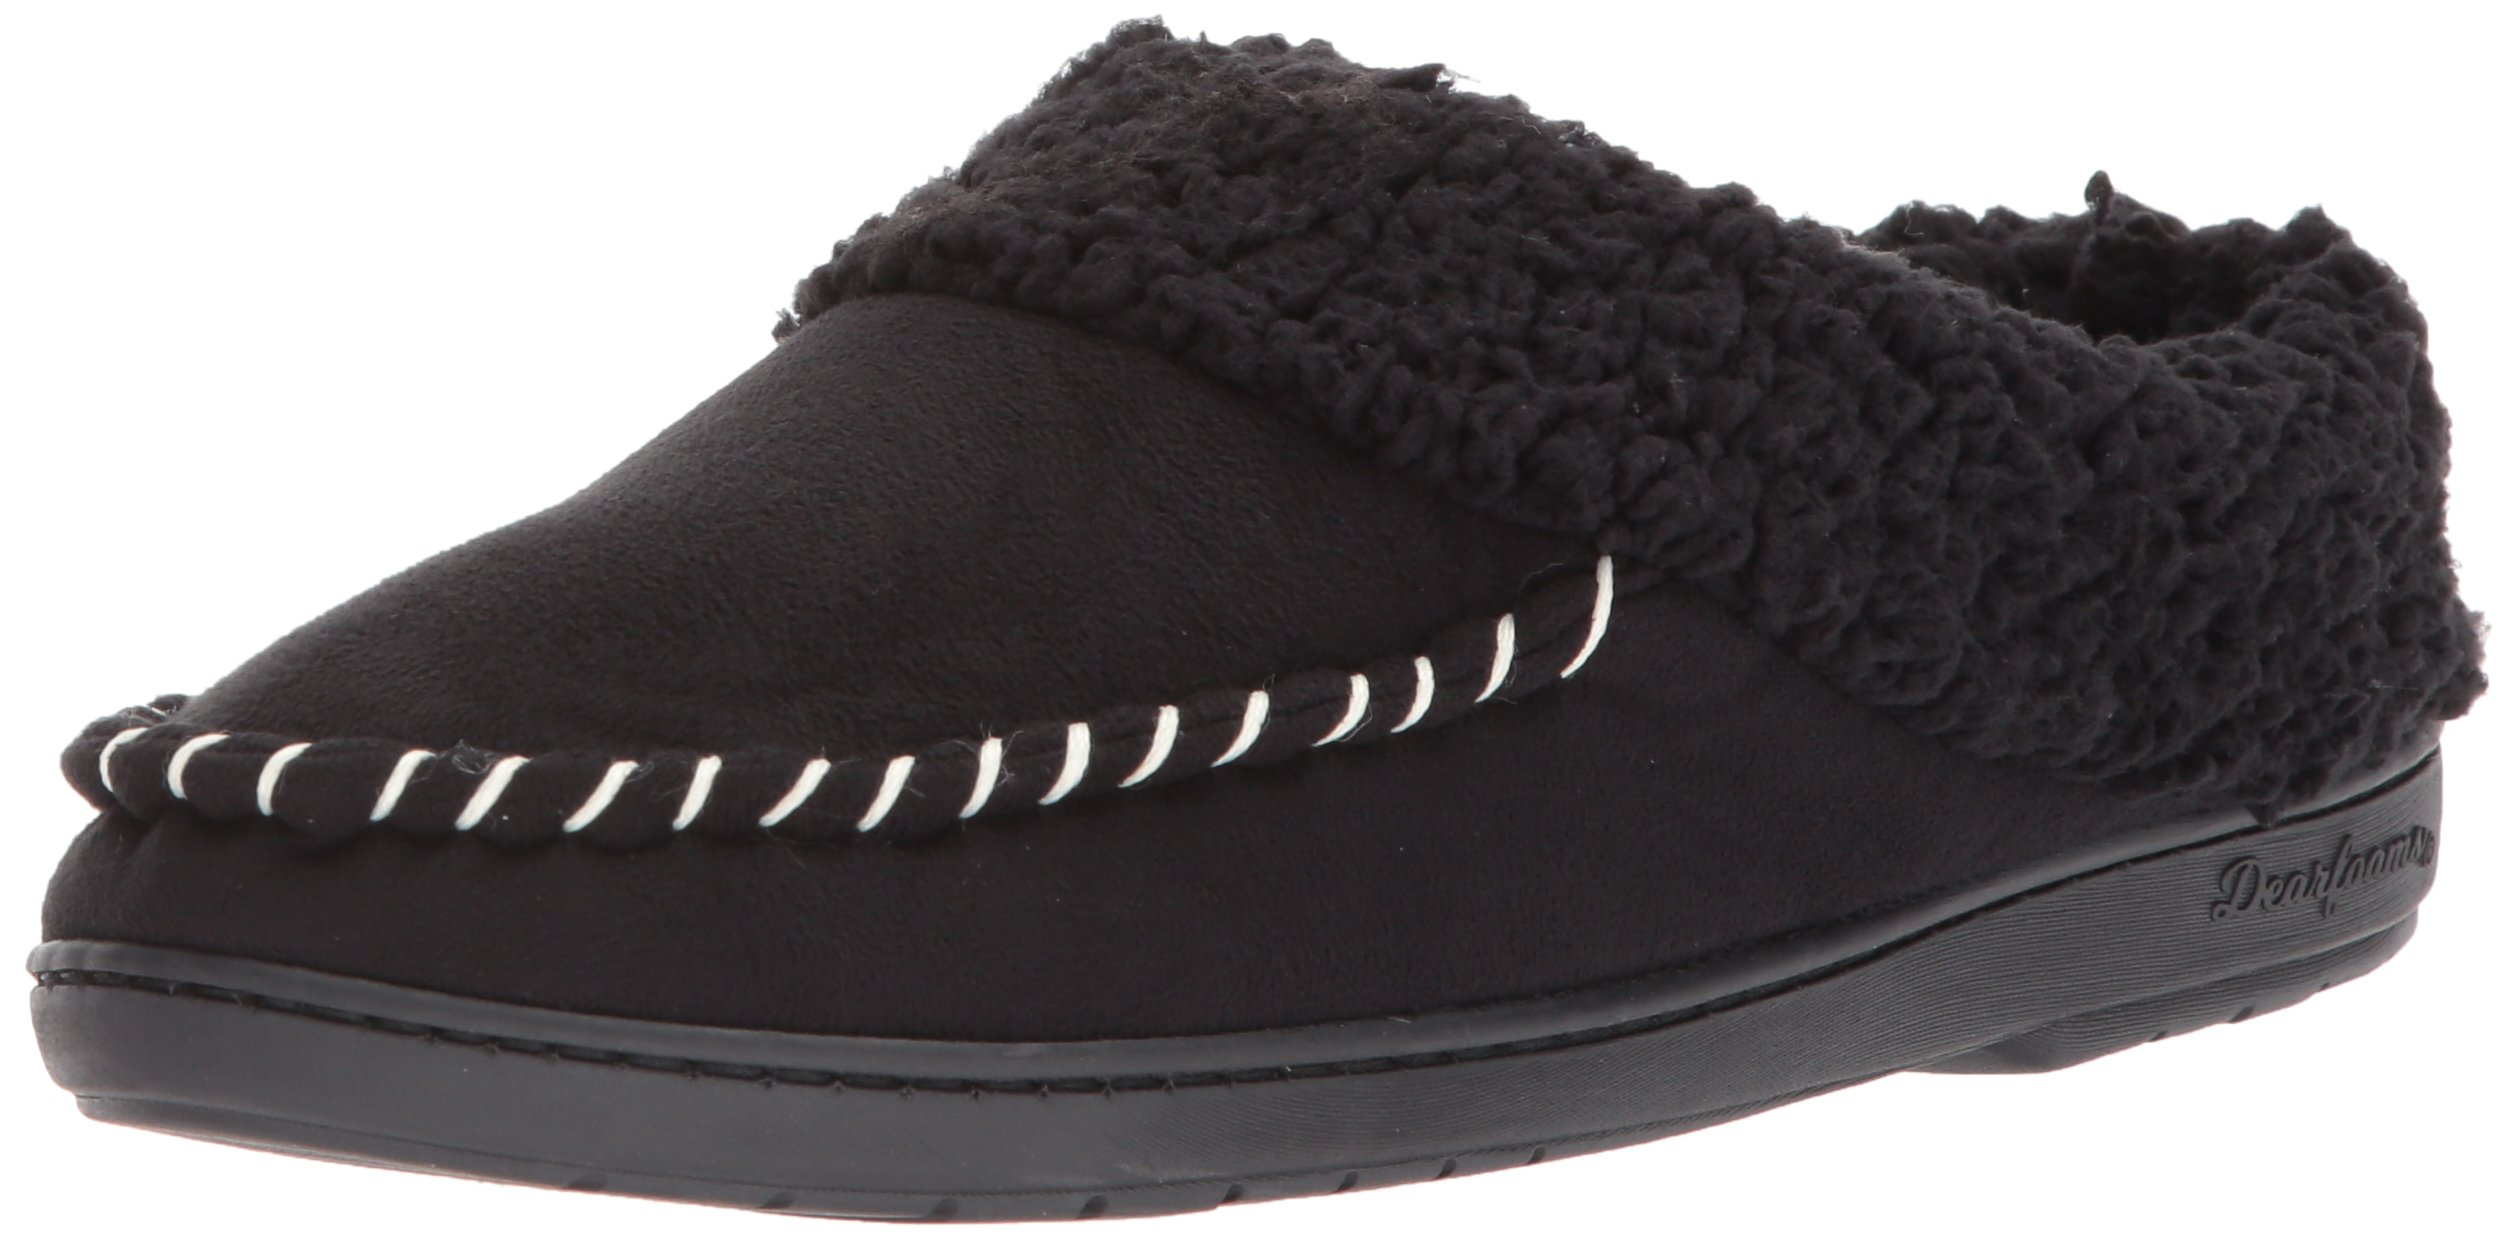 Dearfoams Women's MFS Clog with Whipstitch, Black, S Medium US